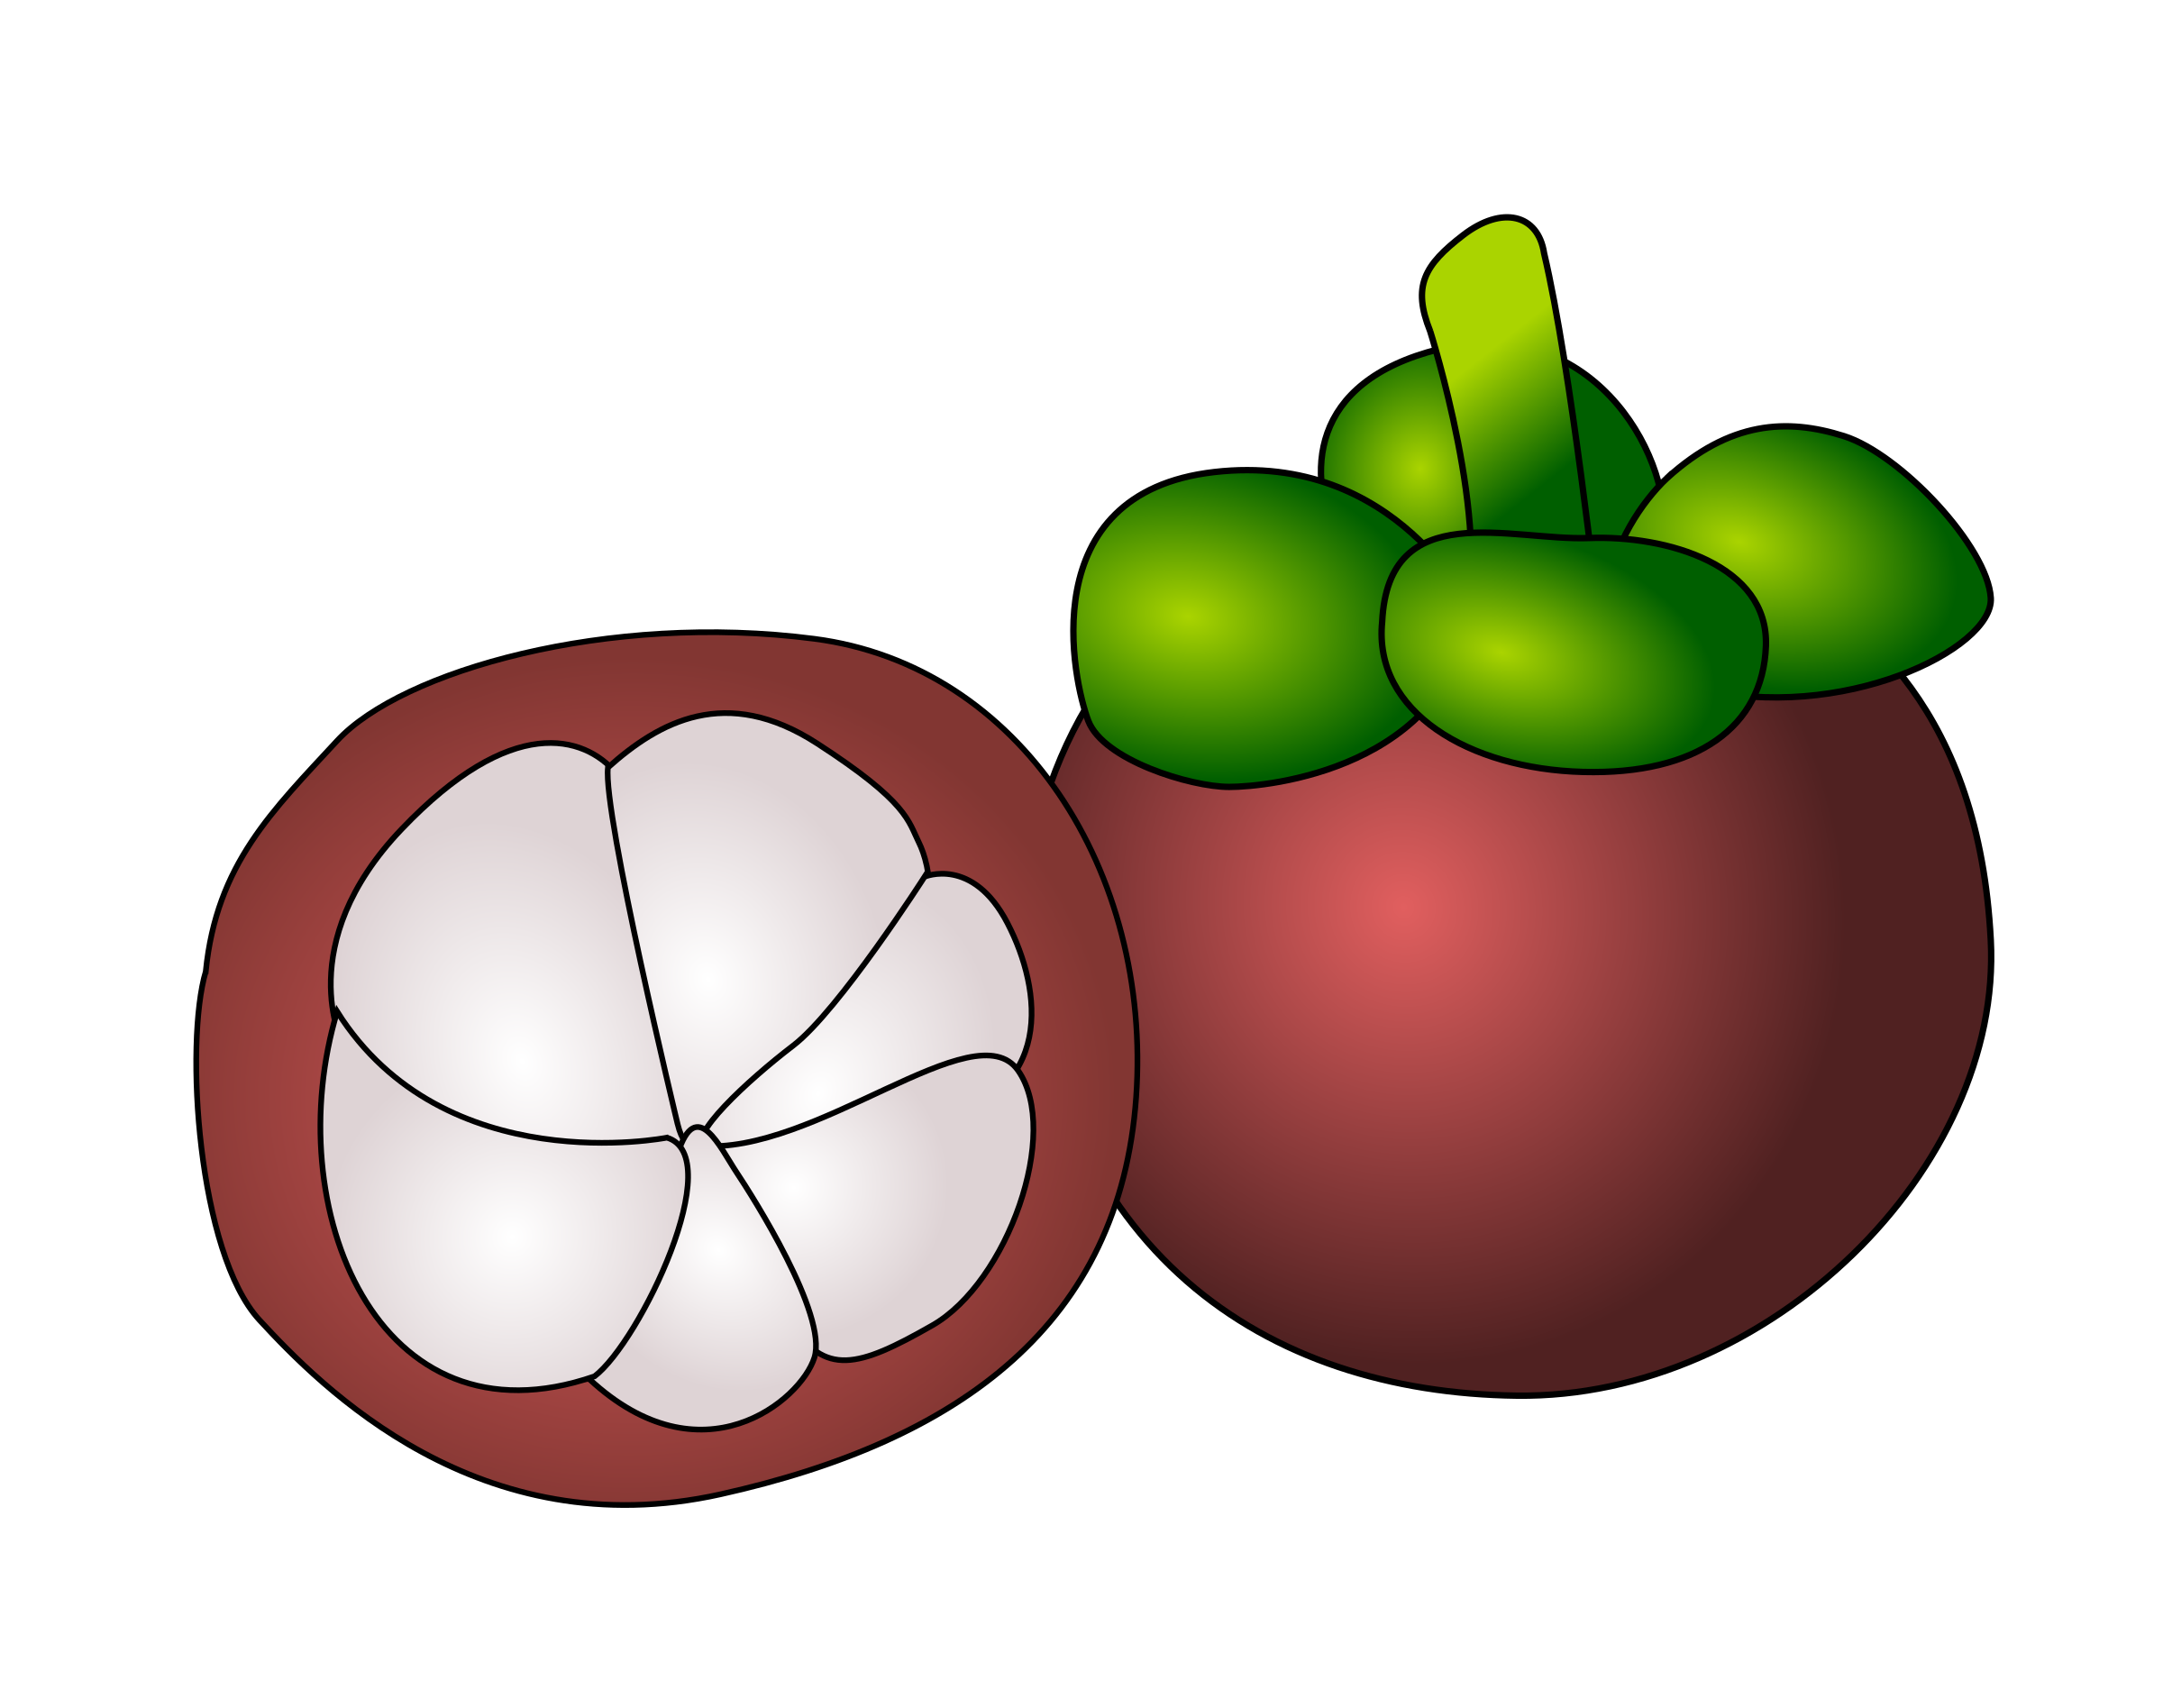 mangosteen by ycteo